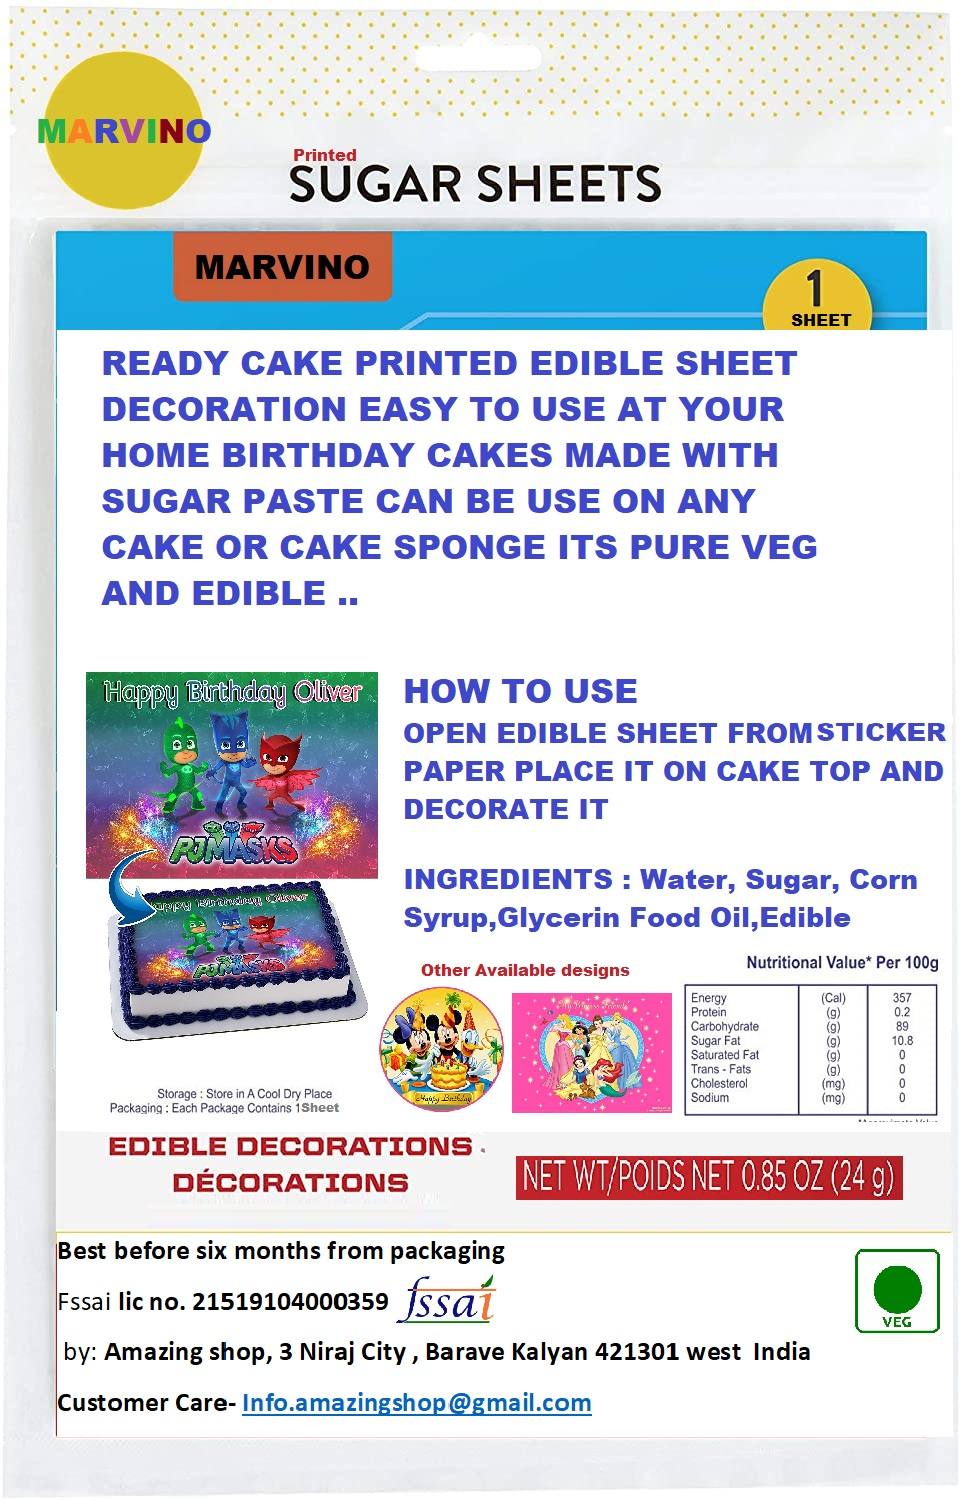 Marvino Edible Cake Topper Decorative Sheet Sugar Frosting Icing Cake Photo Decoration Ready To Use 28X20cms (Design 11)